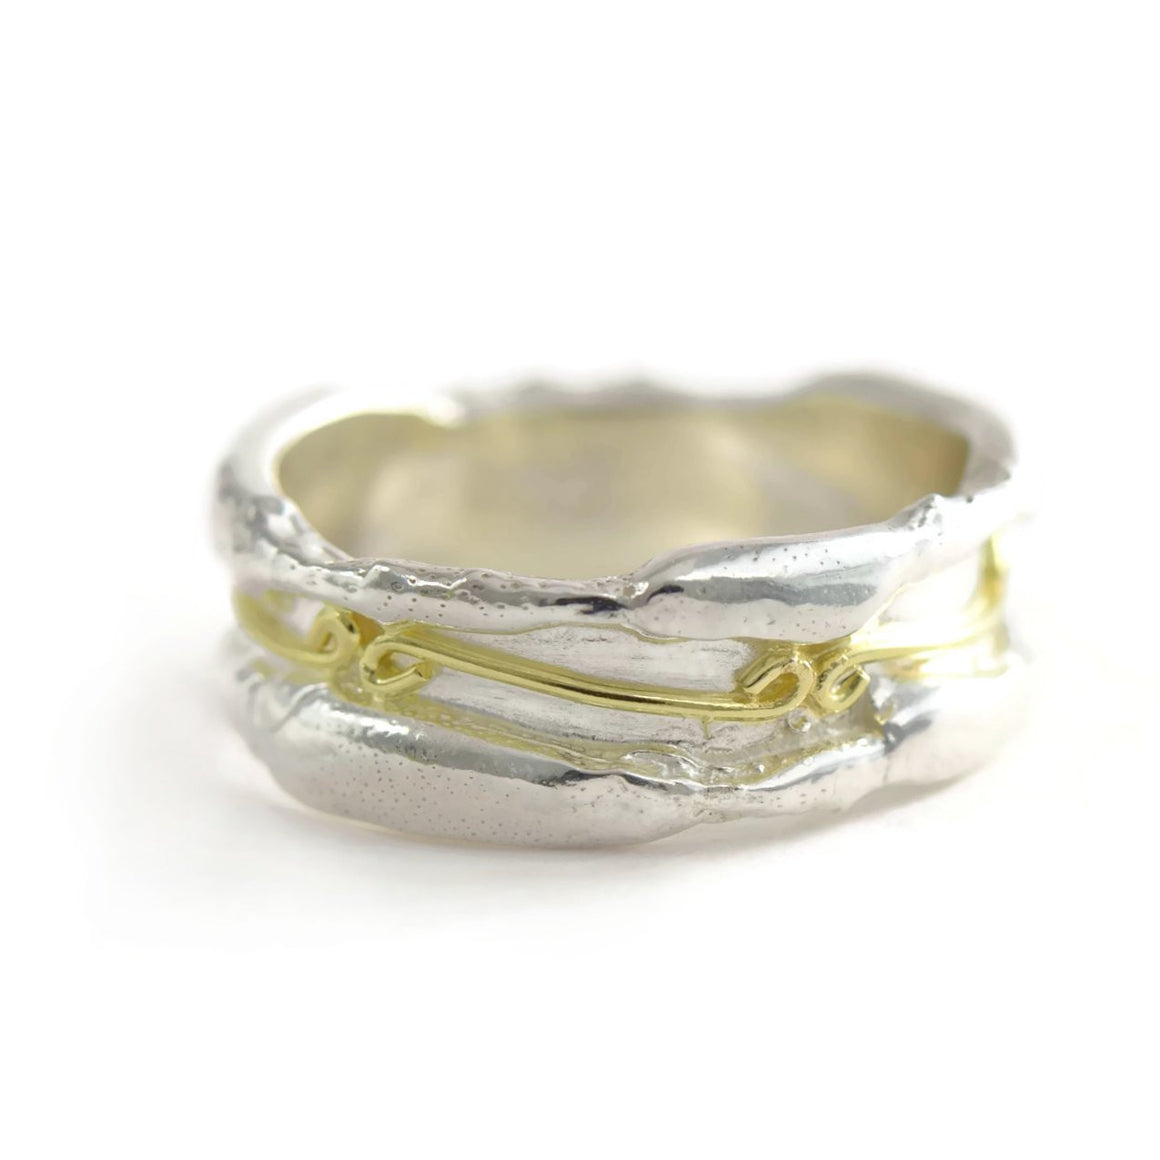 18ct gold and silver patterned robust ring band, decorated with infinity symbols 7 mm wide, unisex ring